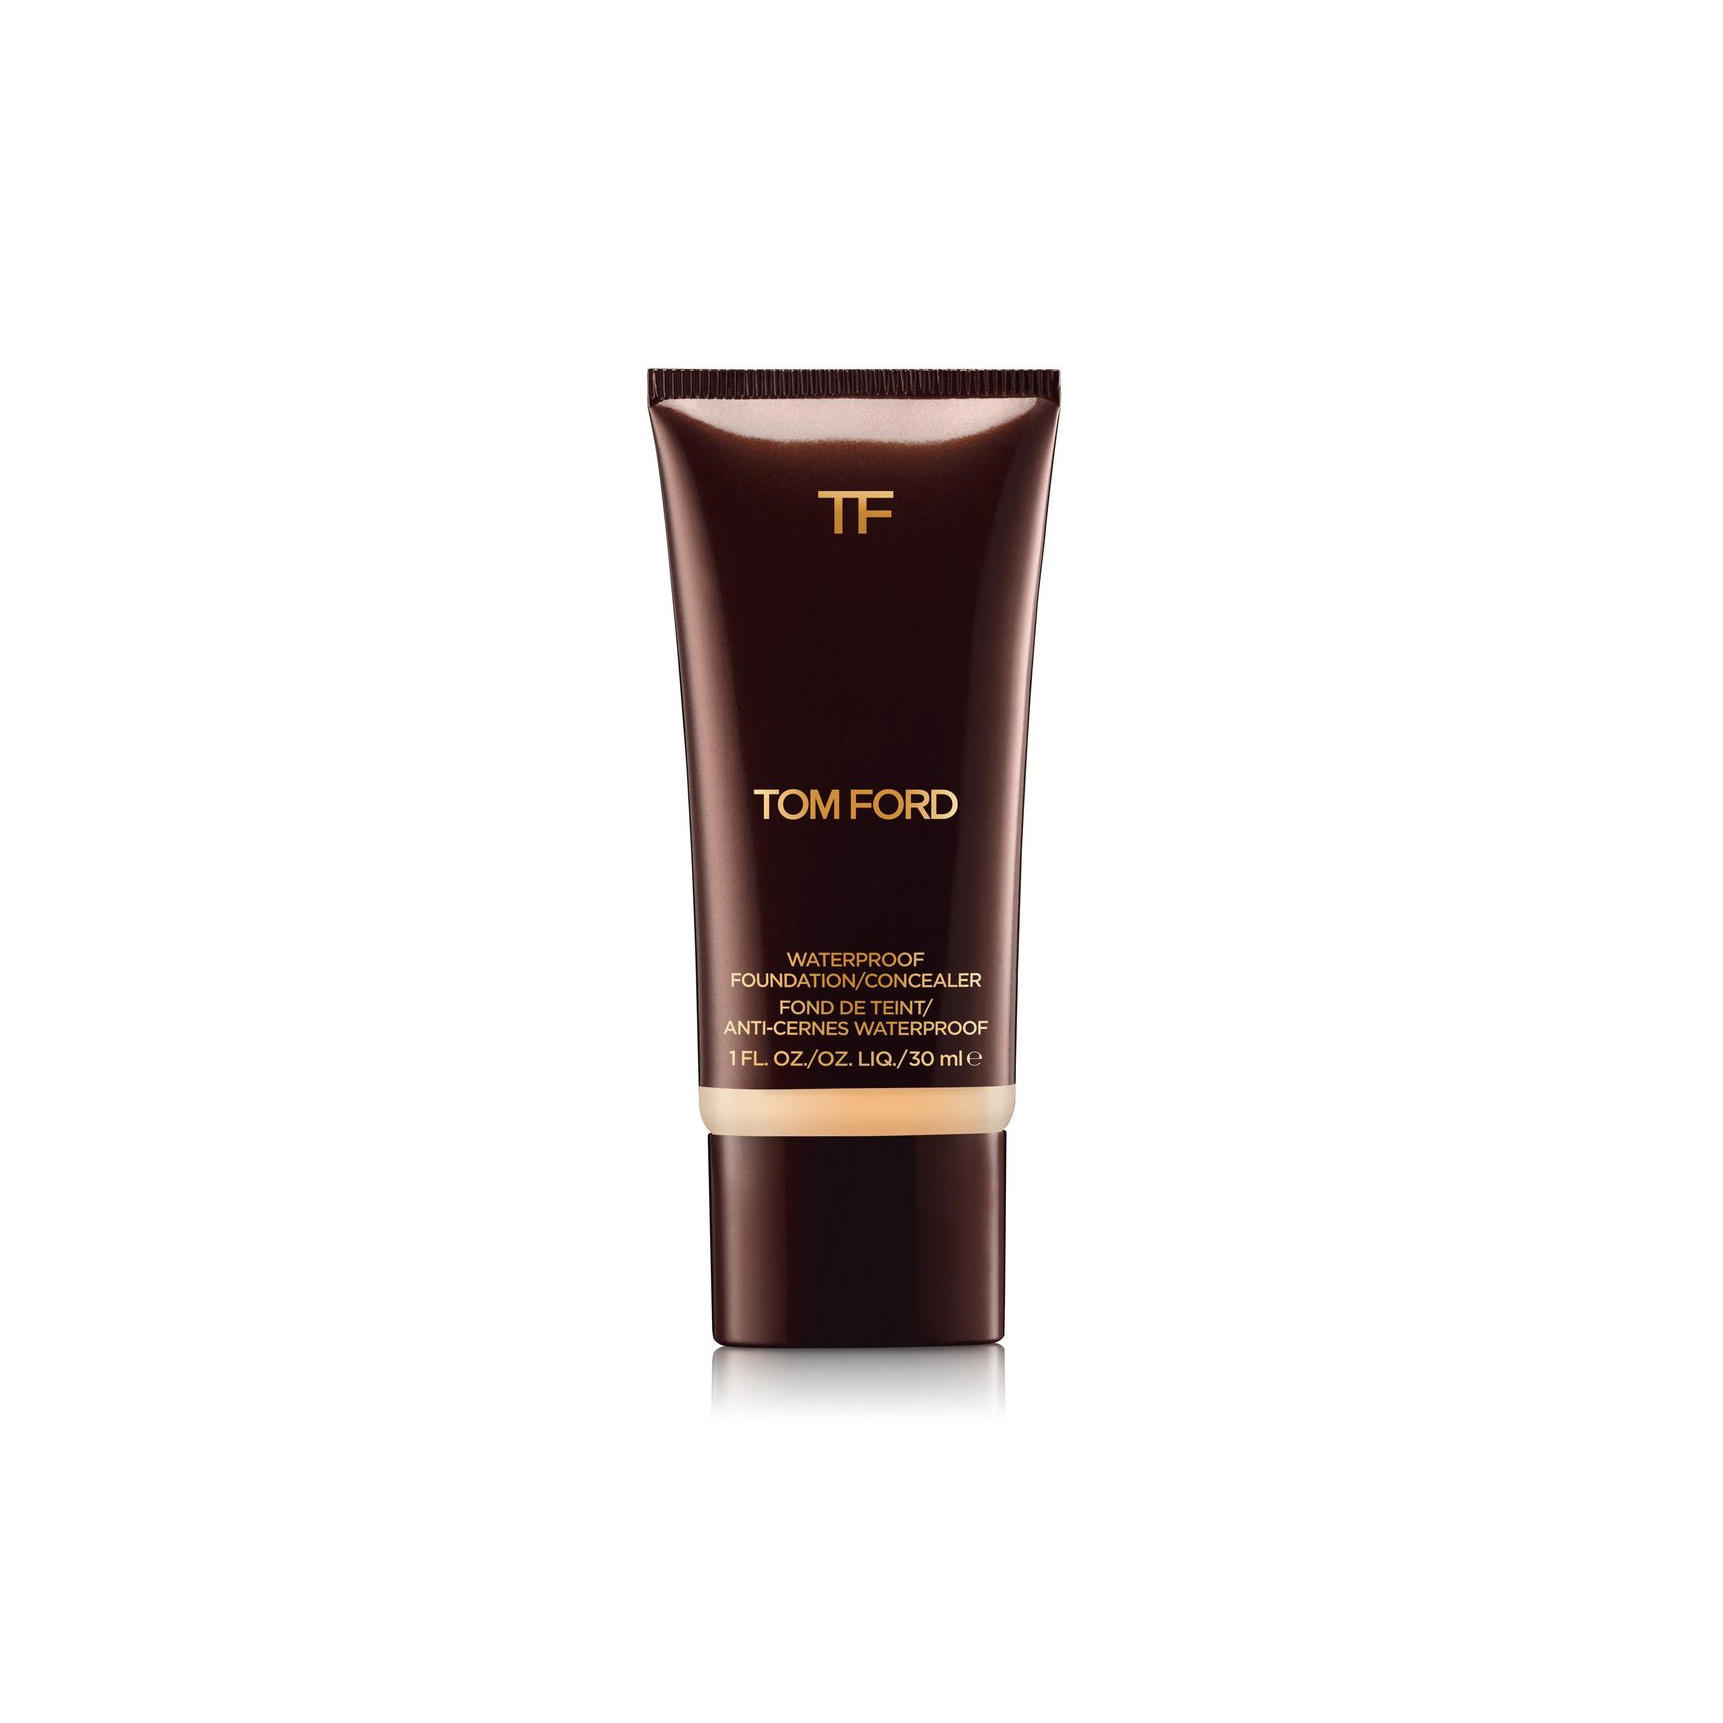 Tom Ford Waterproof Foundation/Concealer Buff 2.0